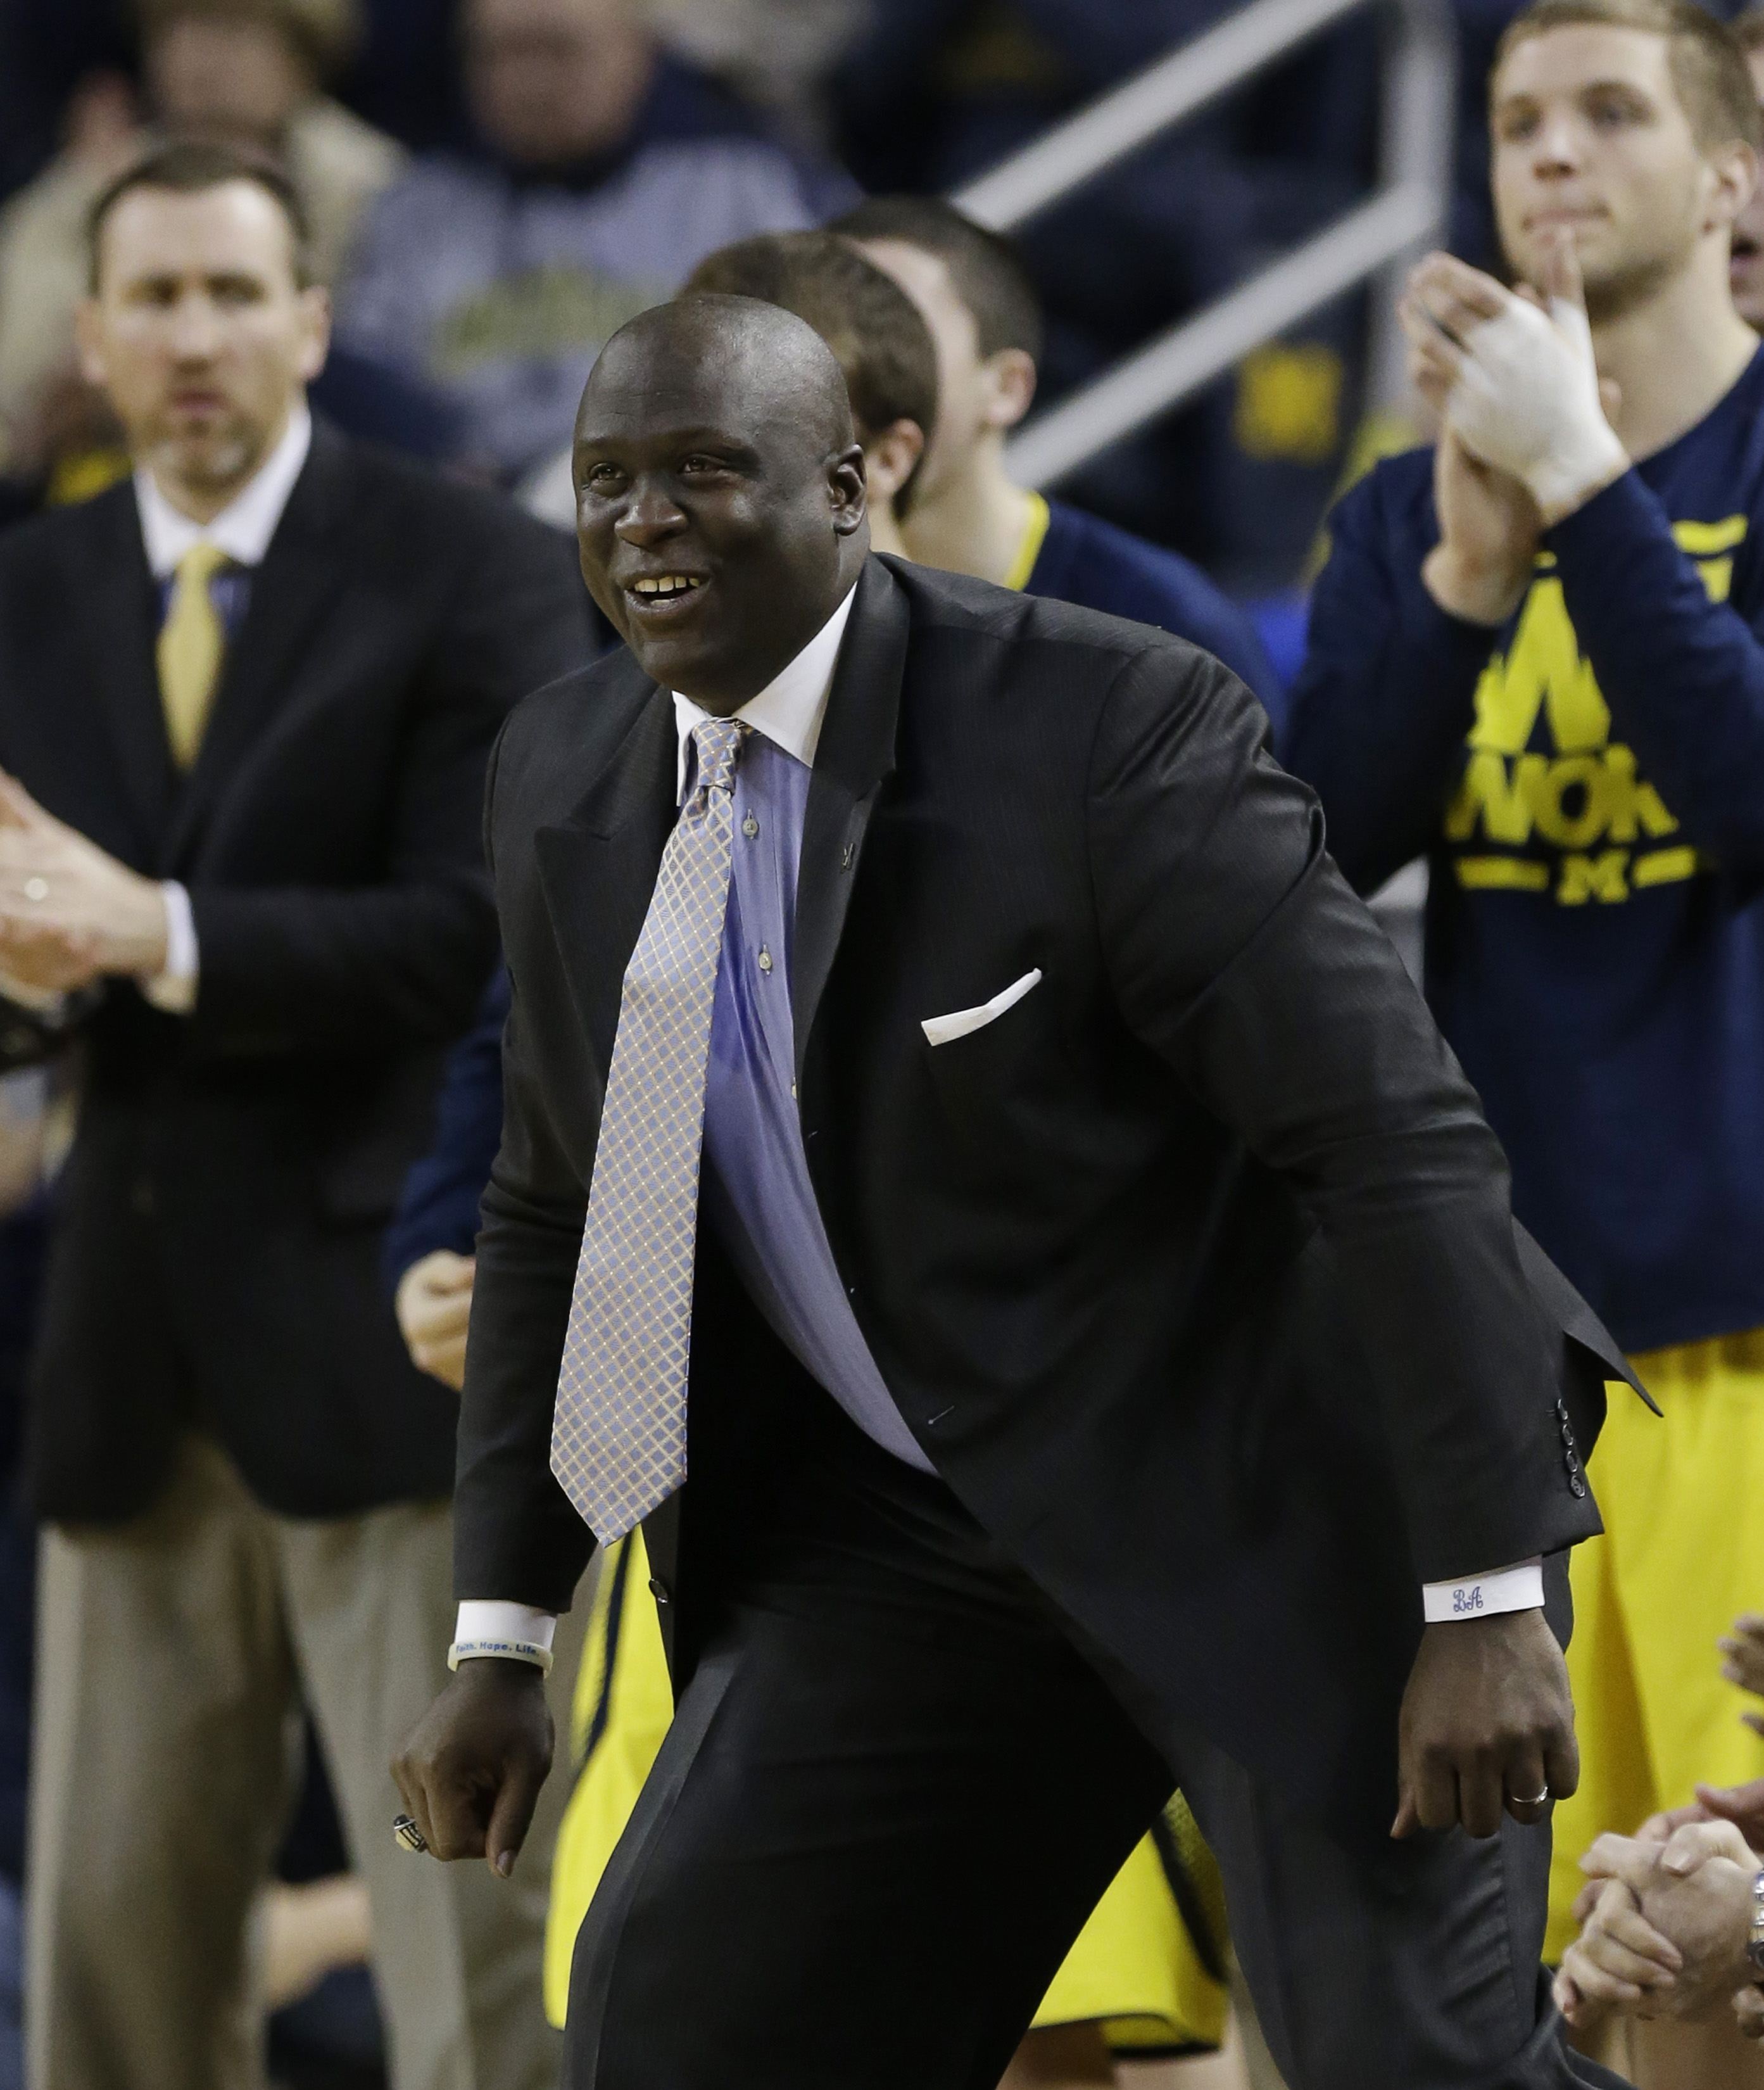 Michigan assistant coach Bacari Alexander is seen on the sidelines during the second half of an NCAA college basketball game against Wisconsin in Ann Arbor, Mich., Sunday, Feb. 16, 2014. (AP Photo/Carlos Osorio)